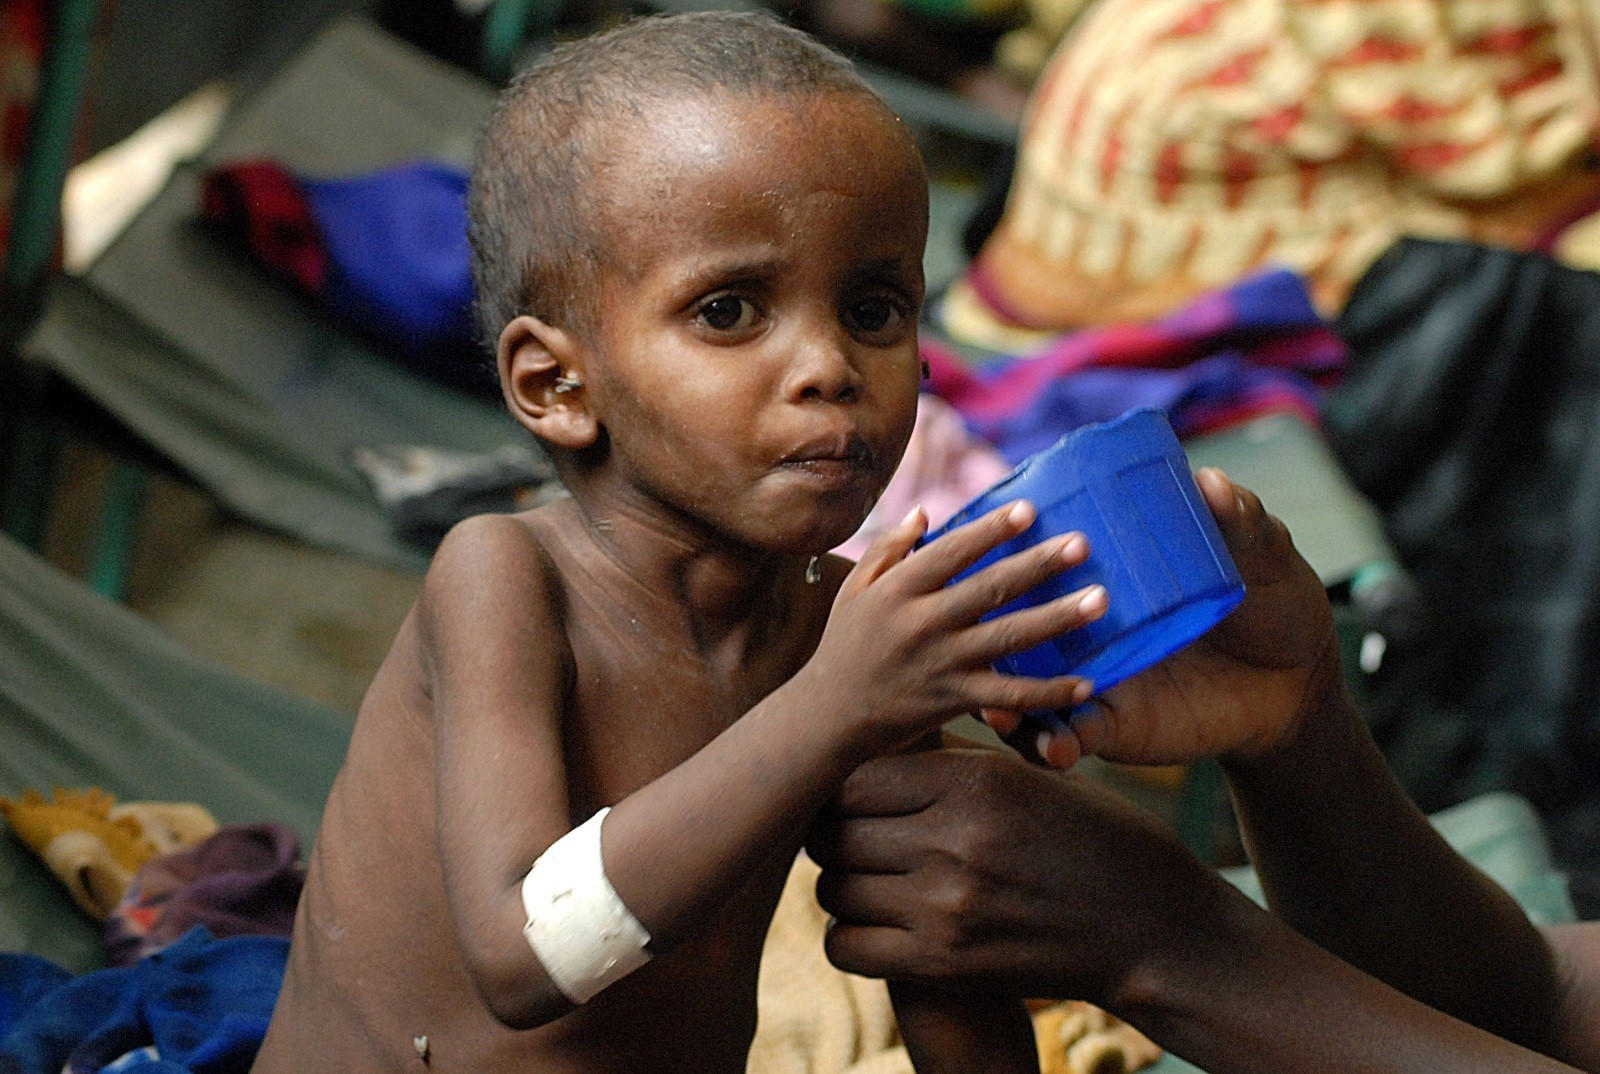 Malnutrition: global pandemic affects one third of world's ...